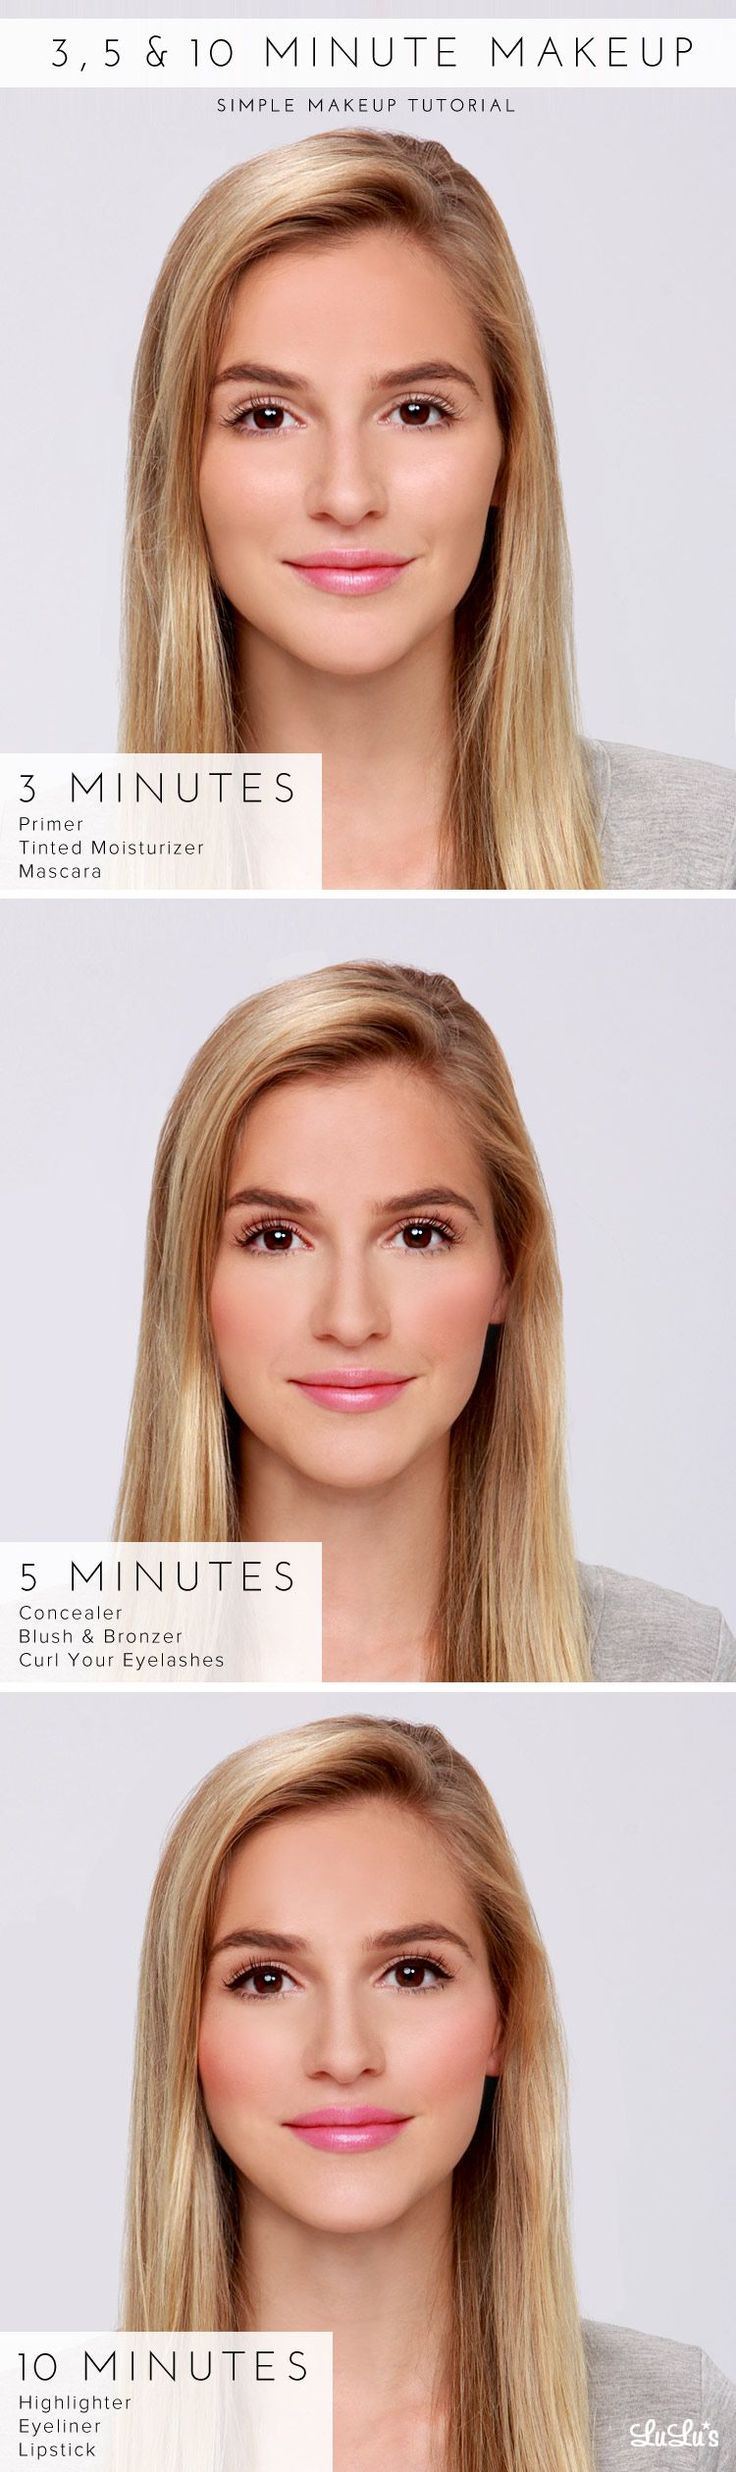 How-to: 3, 5 & 10 Minute Makeup Tutorial